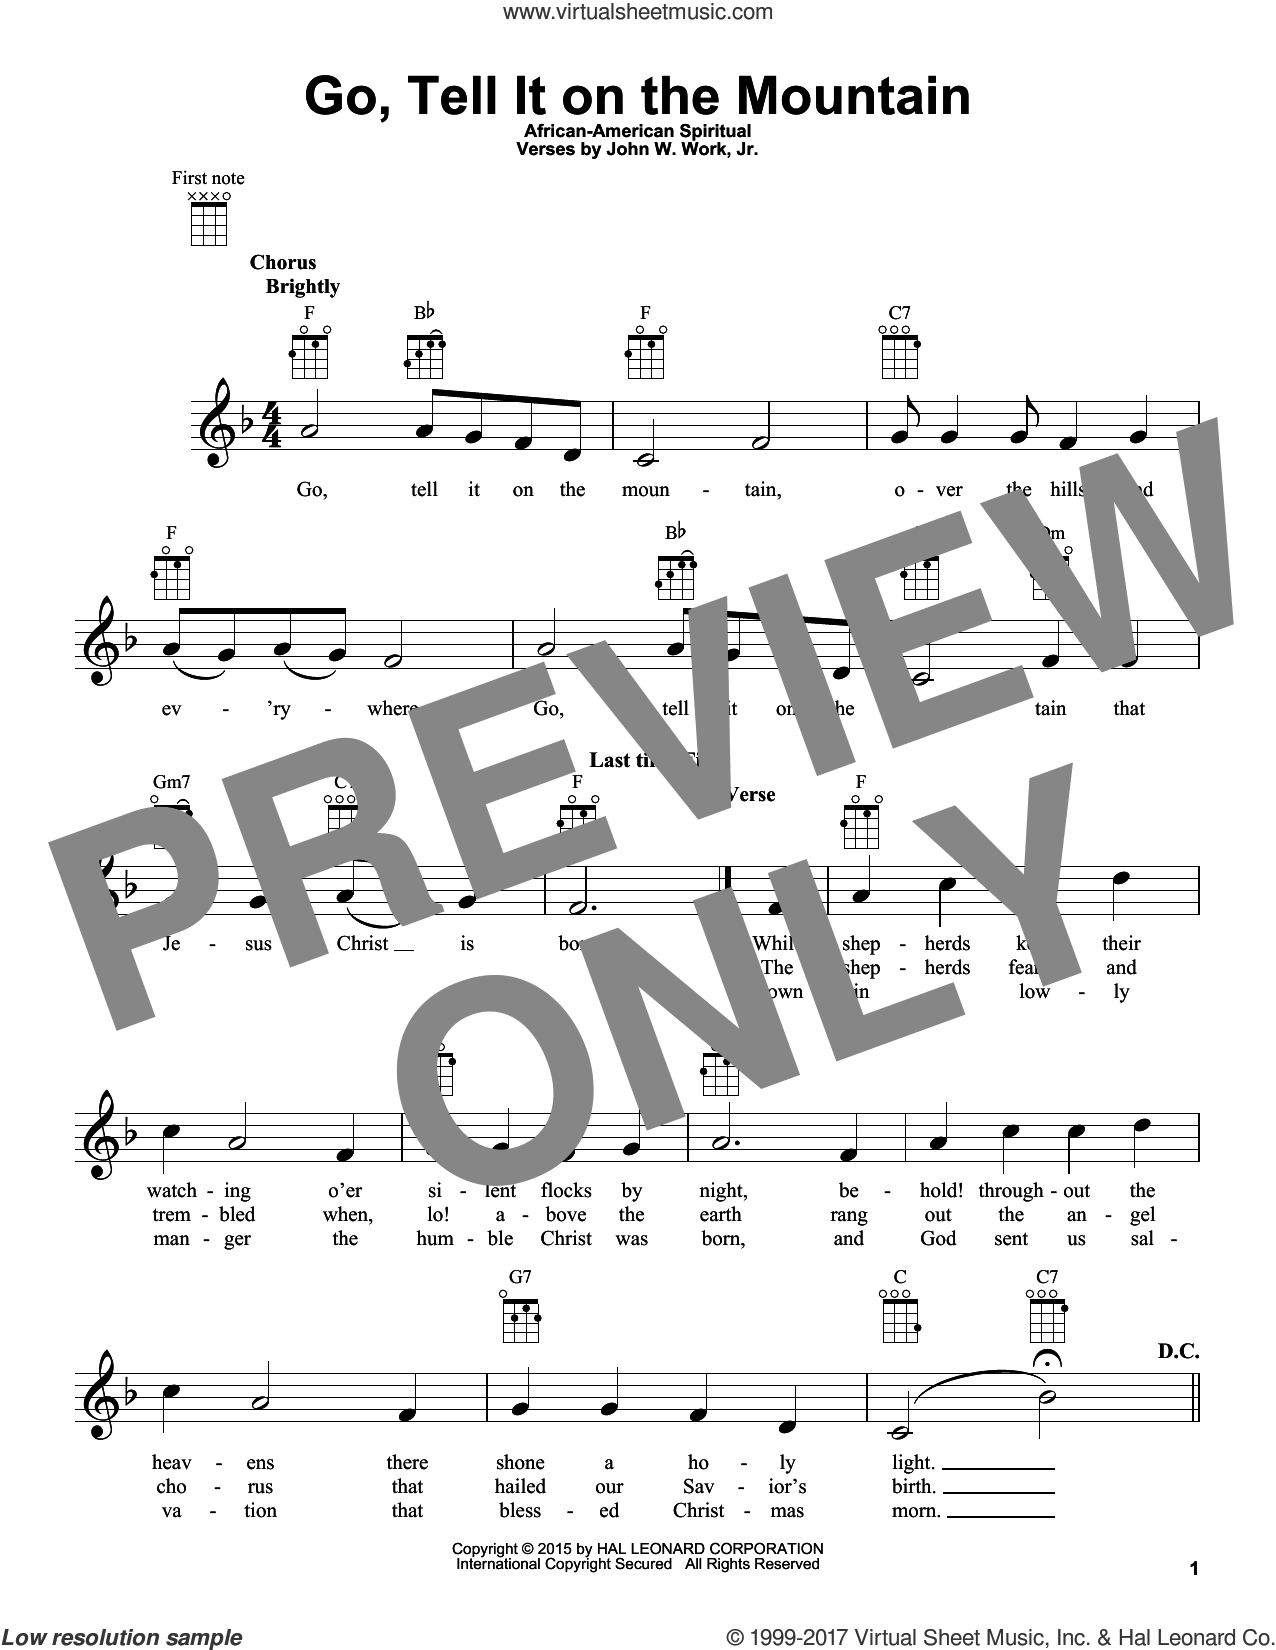 Go, Tell It On The Mountain sheet music for ukulele by John W. Work, Jr. and Miscellaneous, intermediate skill level